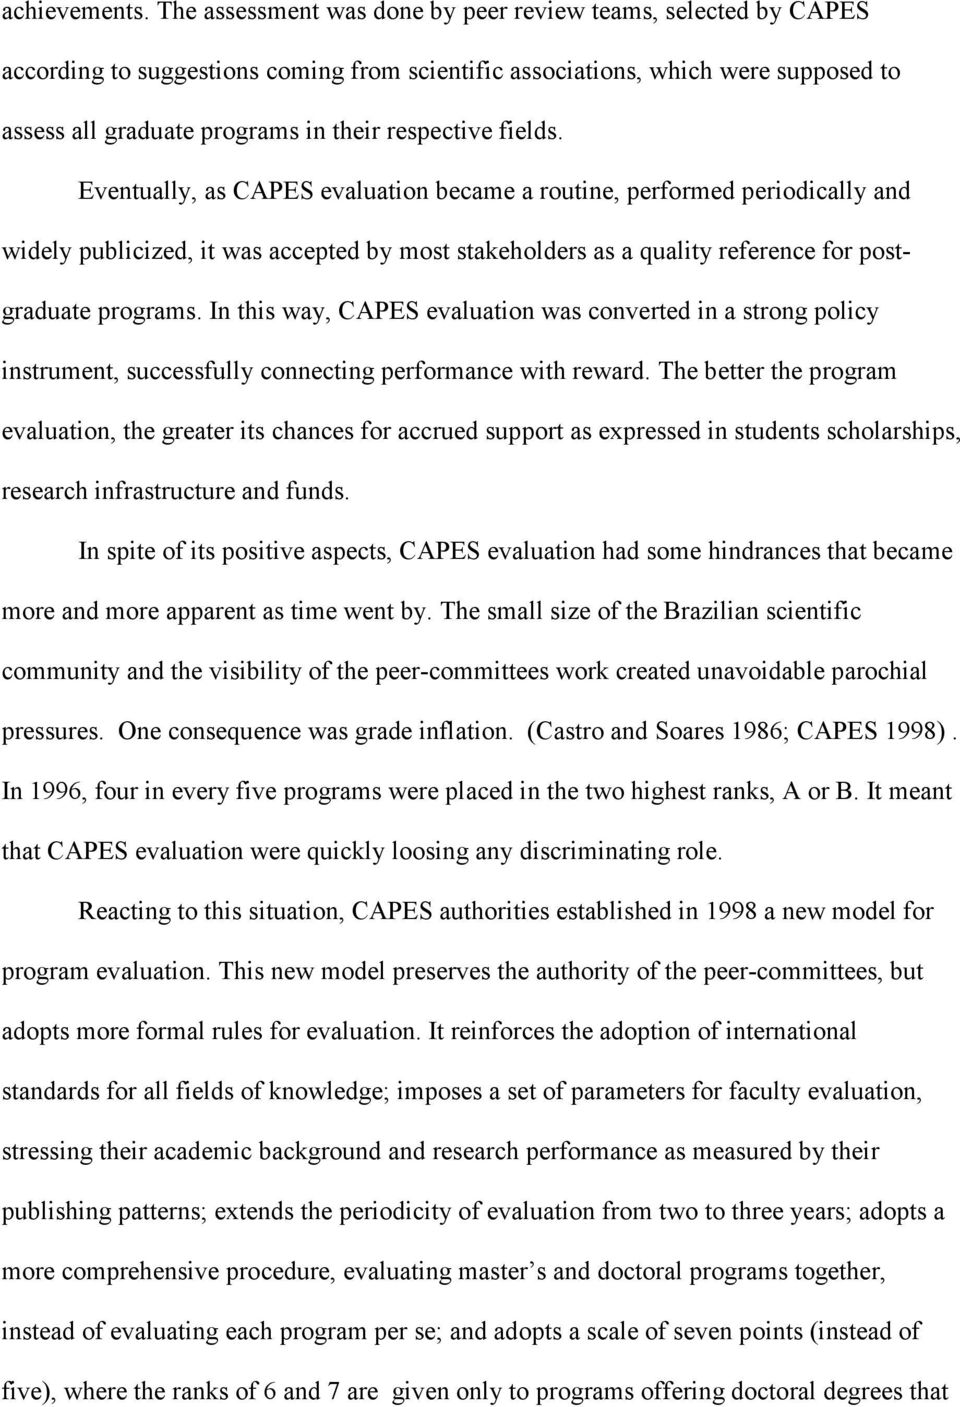 fields. Eventually, as CAPES evaluation became a routine, performed periodically and widely publicized, it was accepted by most stakeholders as a quality reference for postgraduate programs.